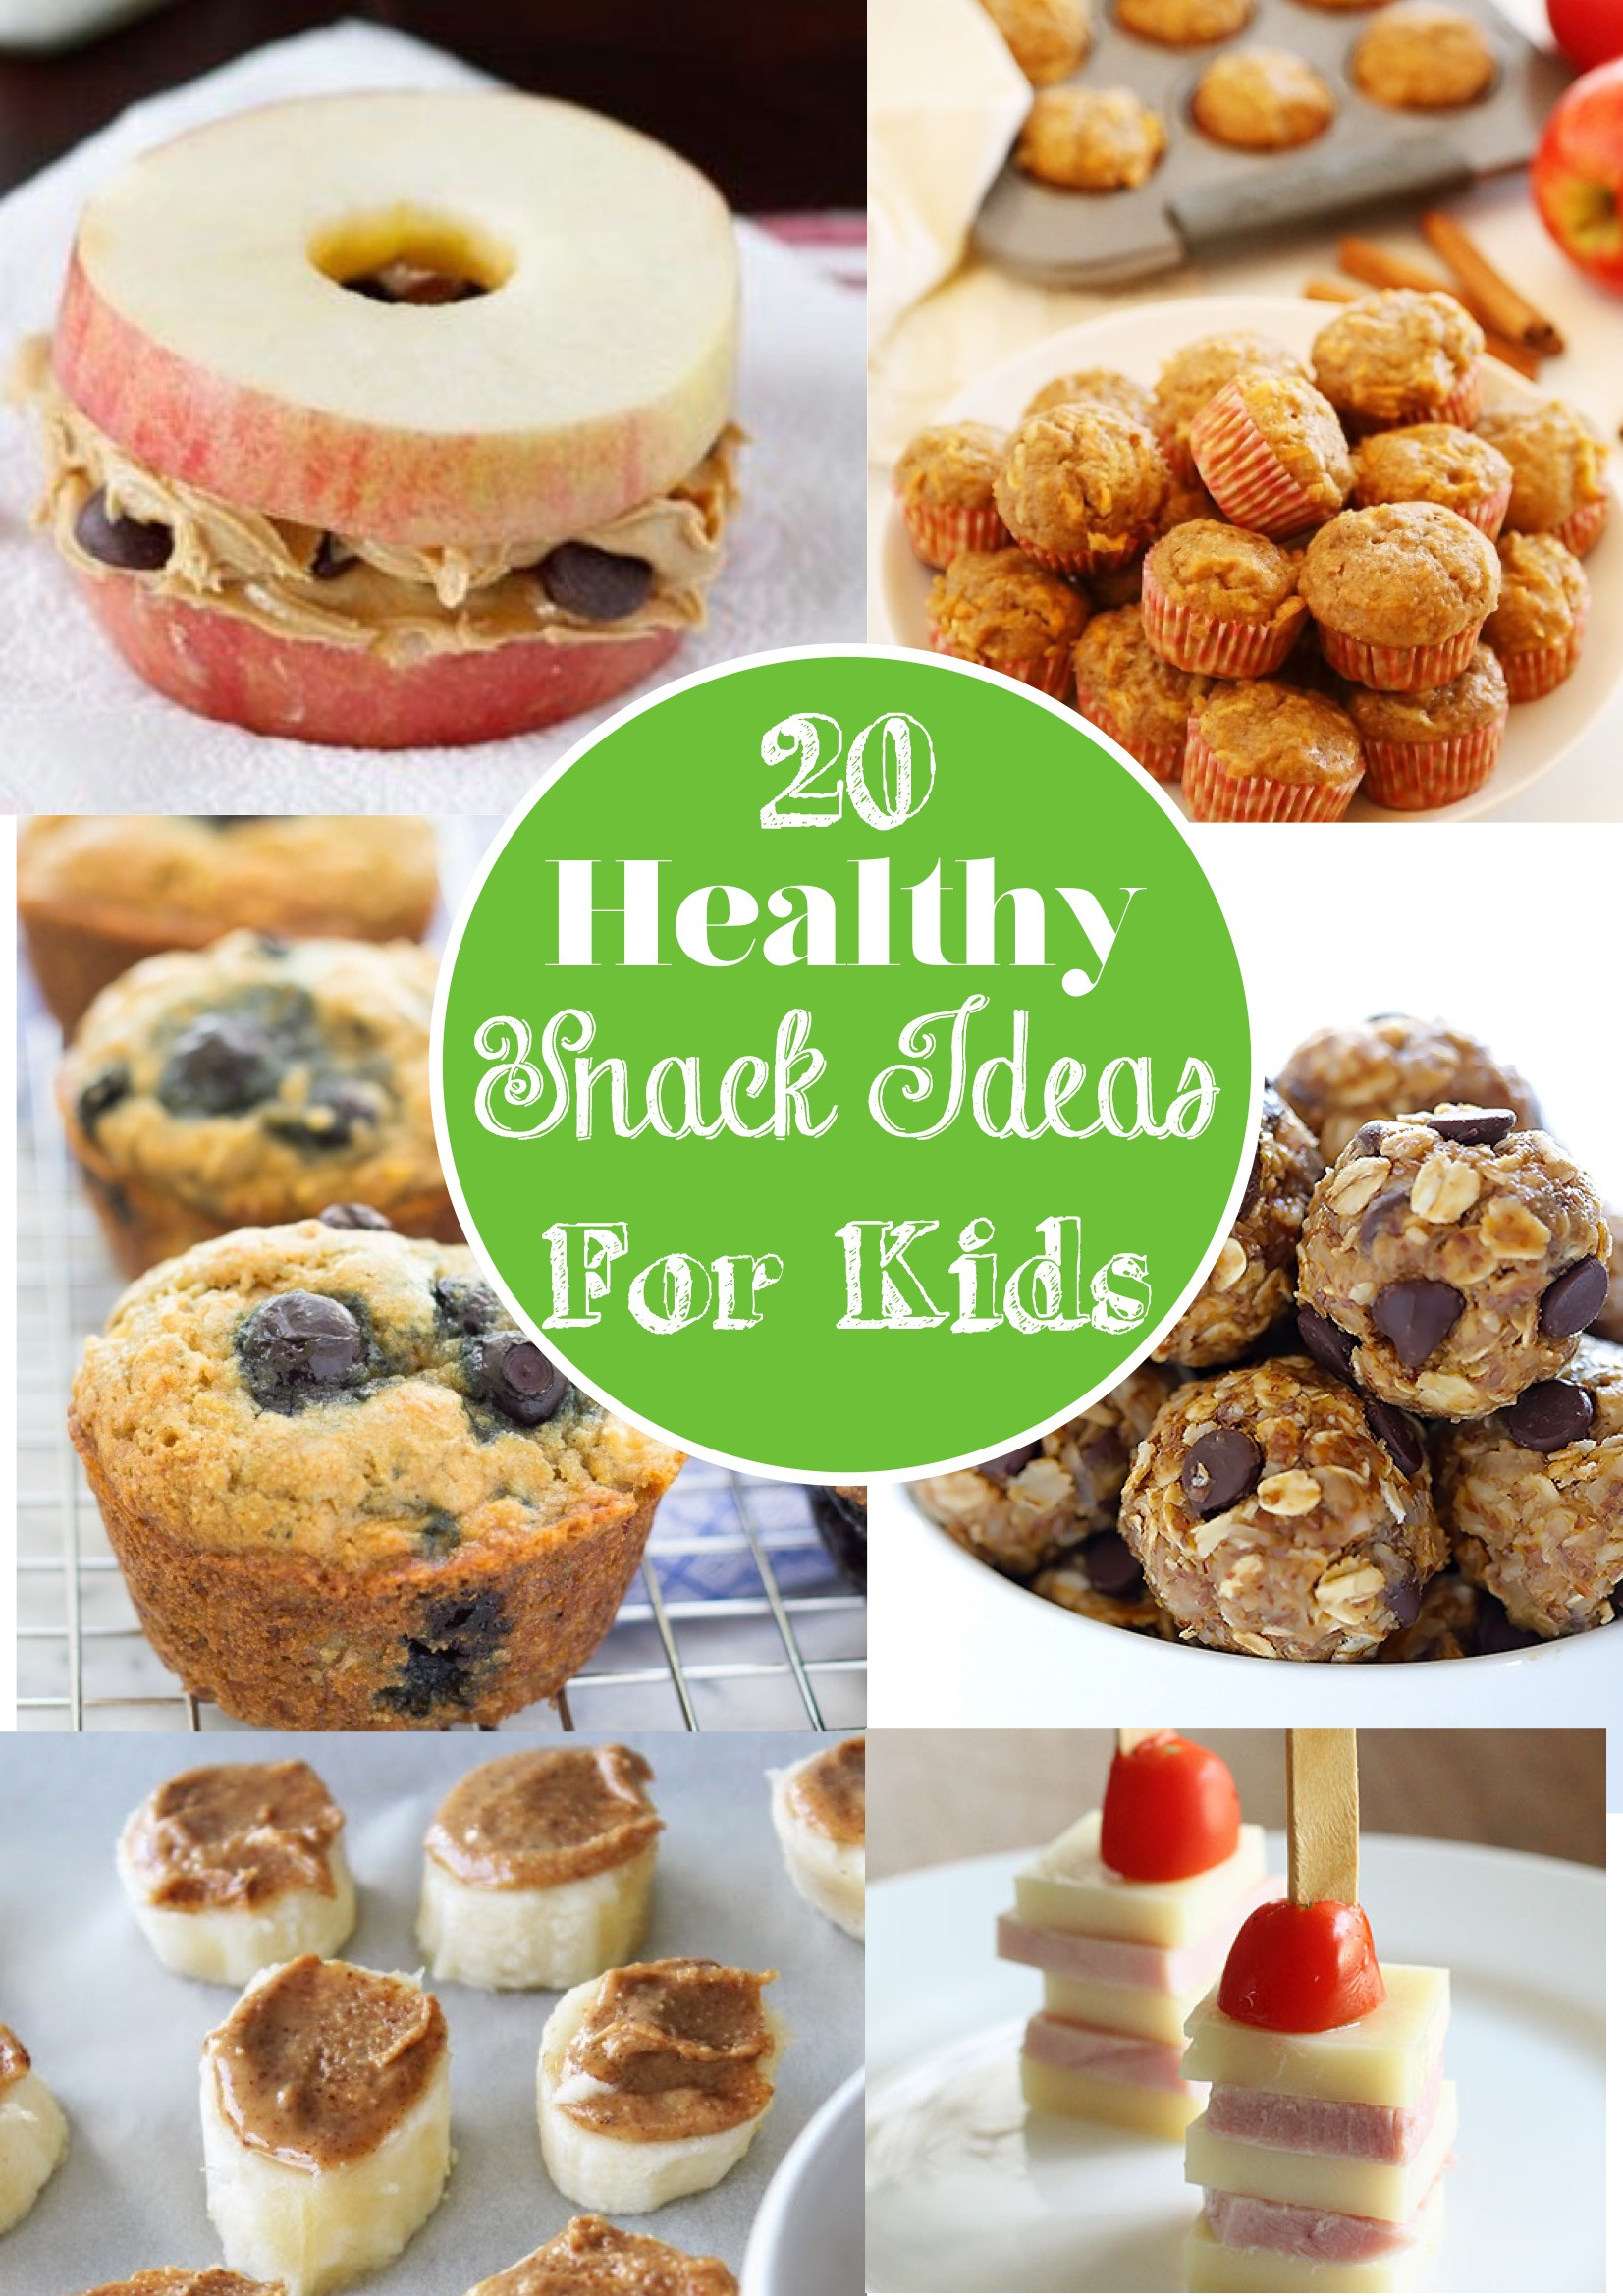 Healthy Homemade Snacks For Toddlers  20 Healthy Snack Ideas For Kids Snack Smart